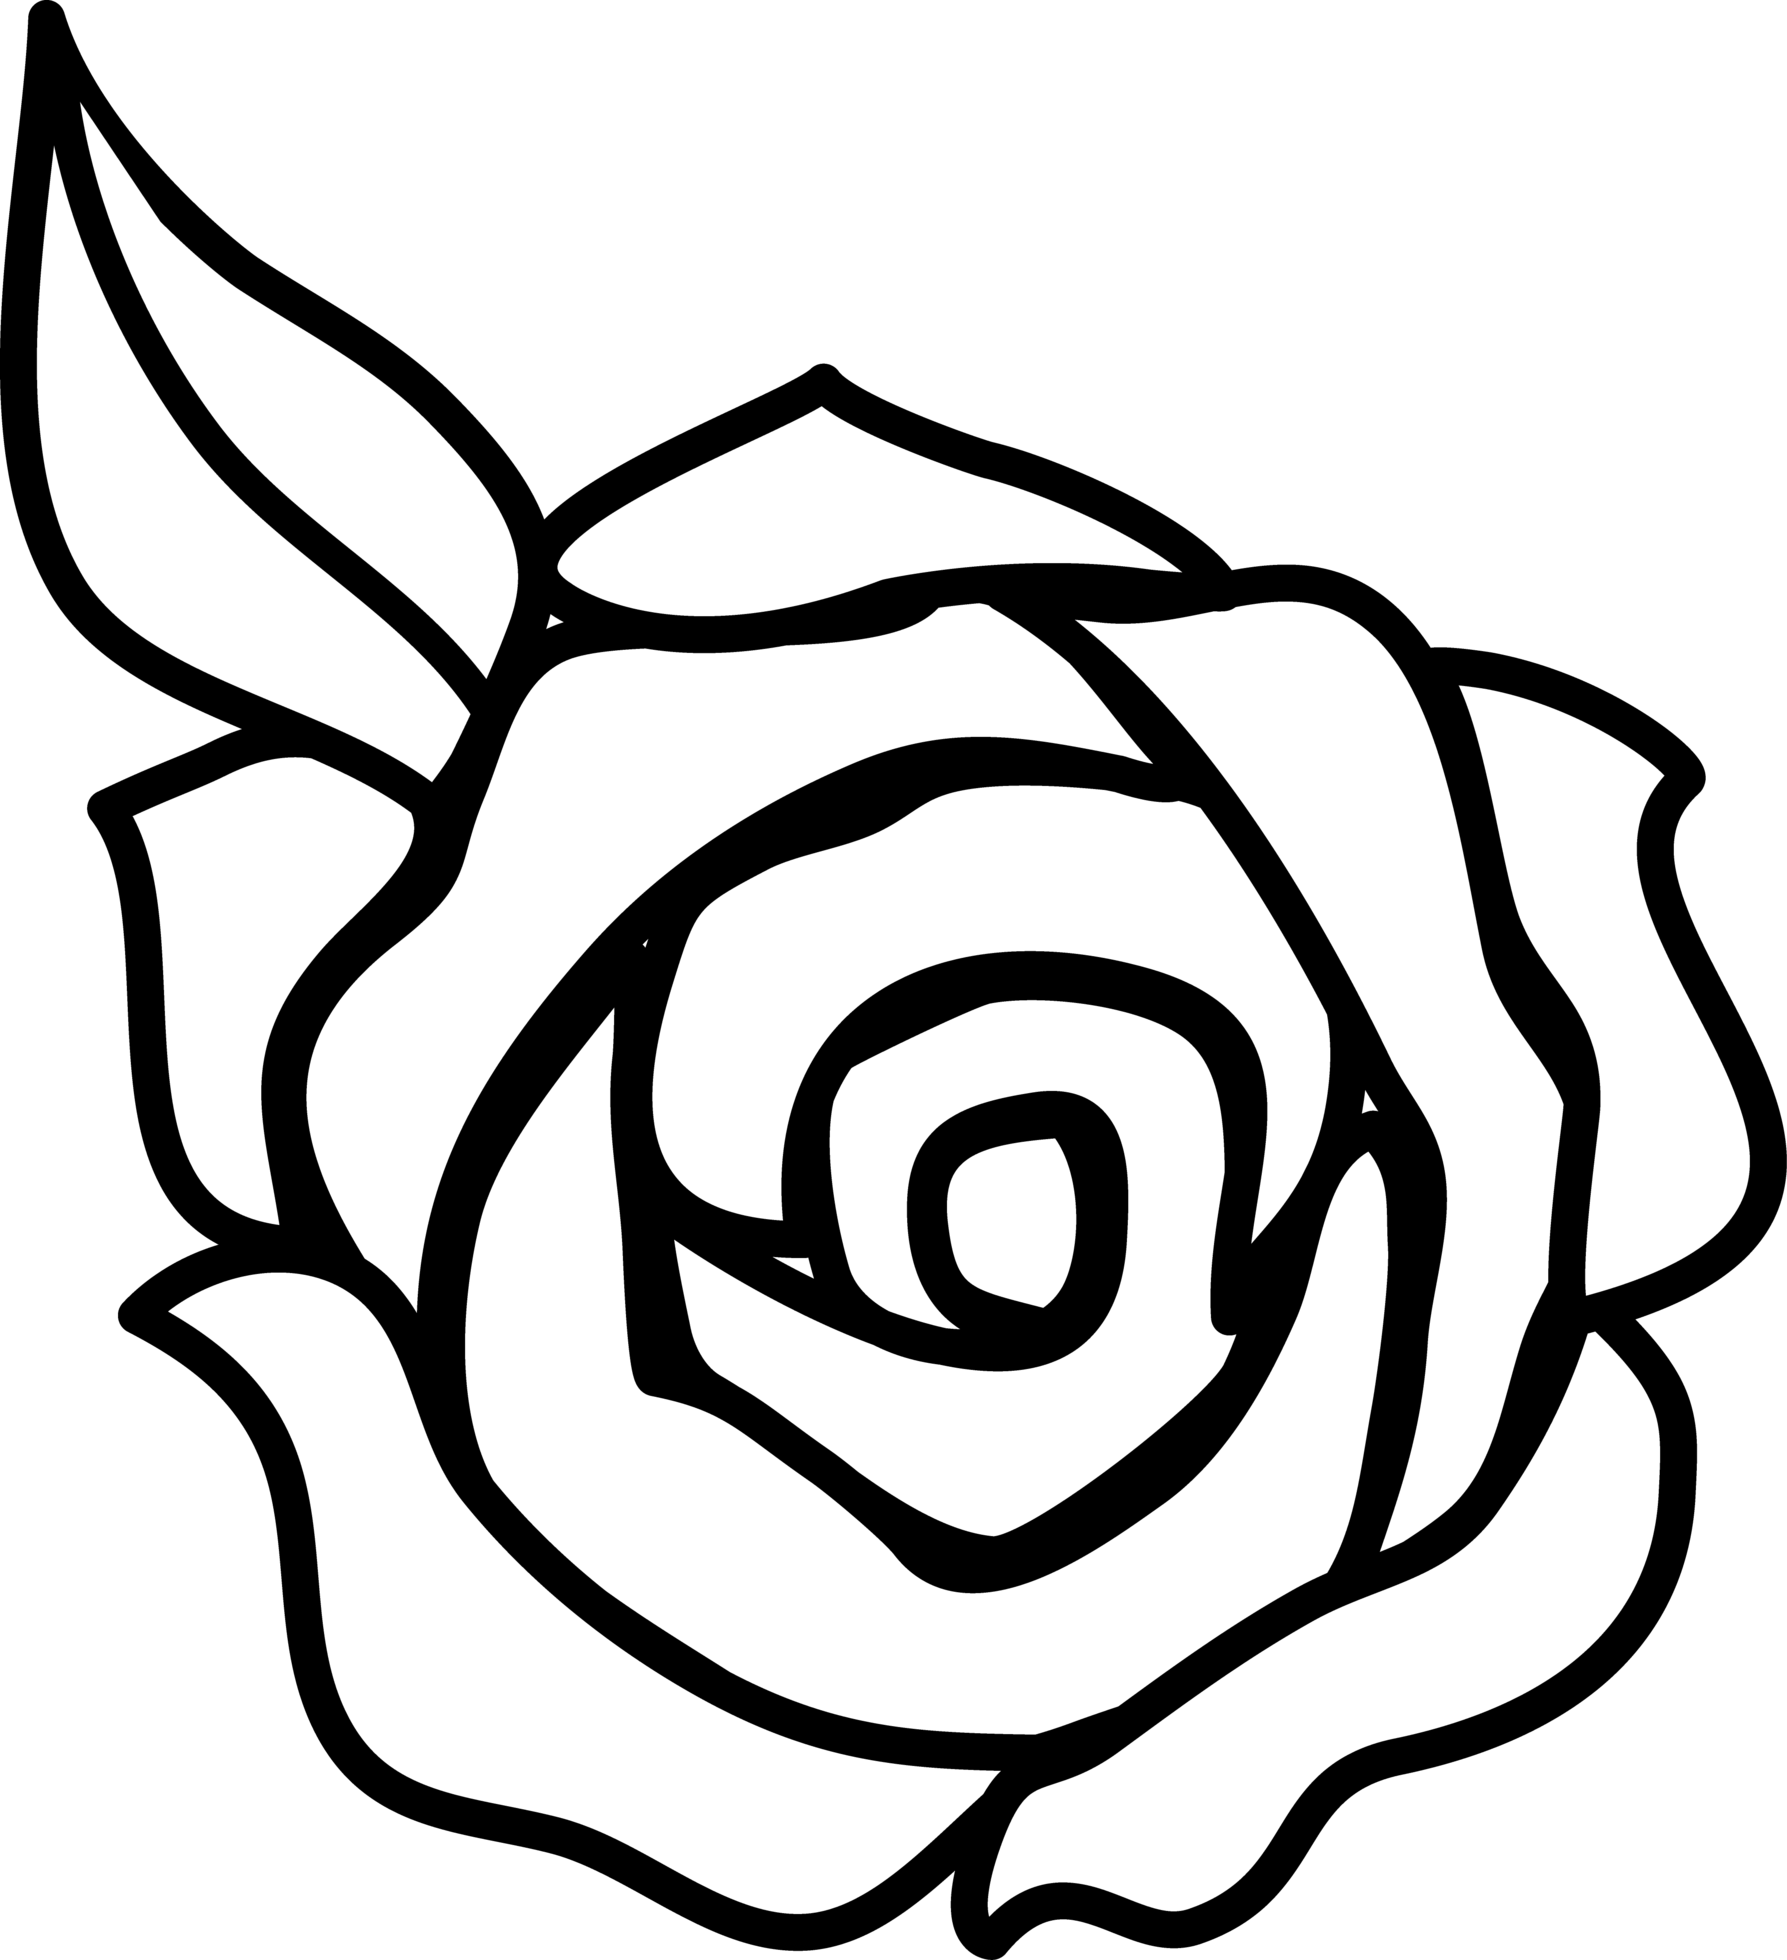 Black and white flower clipart free vector download Red Flower Drawing at GetDrawings.com | Free for personal use Red ... vector download